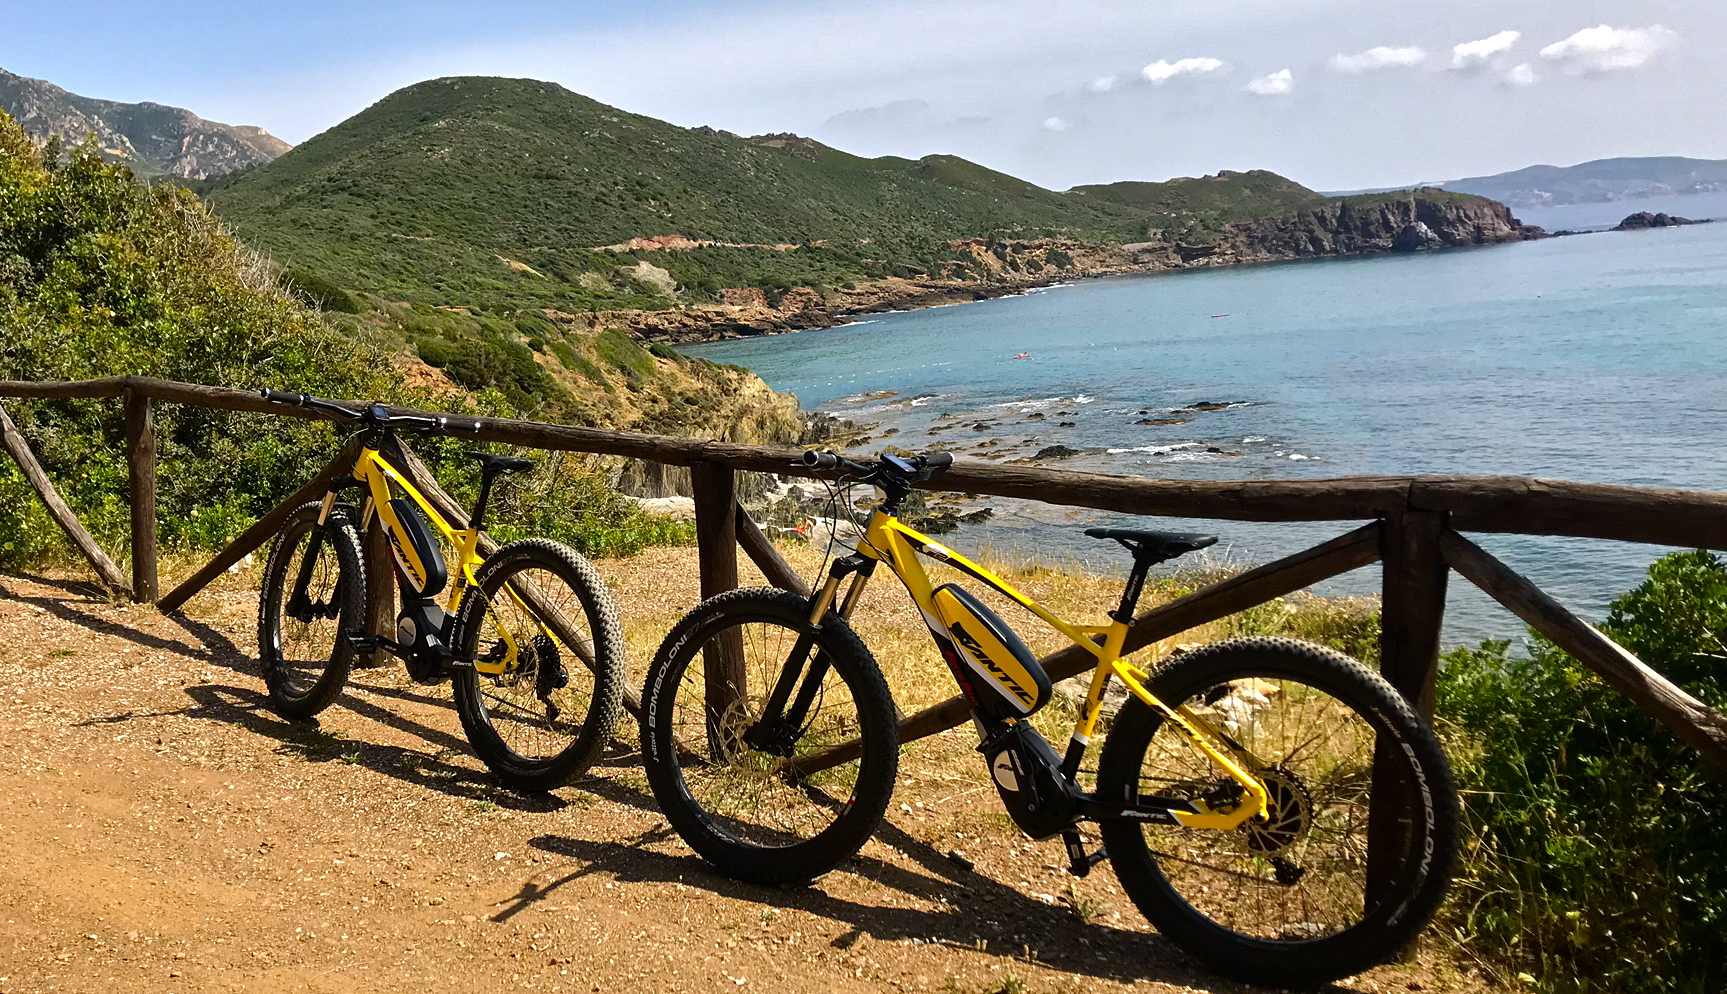 TRIPS and EXCURSIONS WITH RENTAL E-MOUNTAIN BIKE